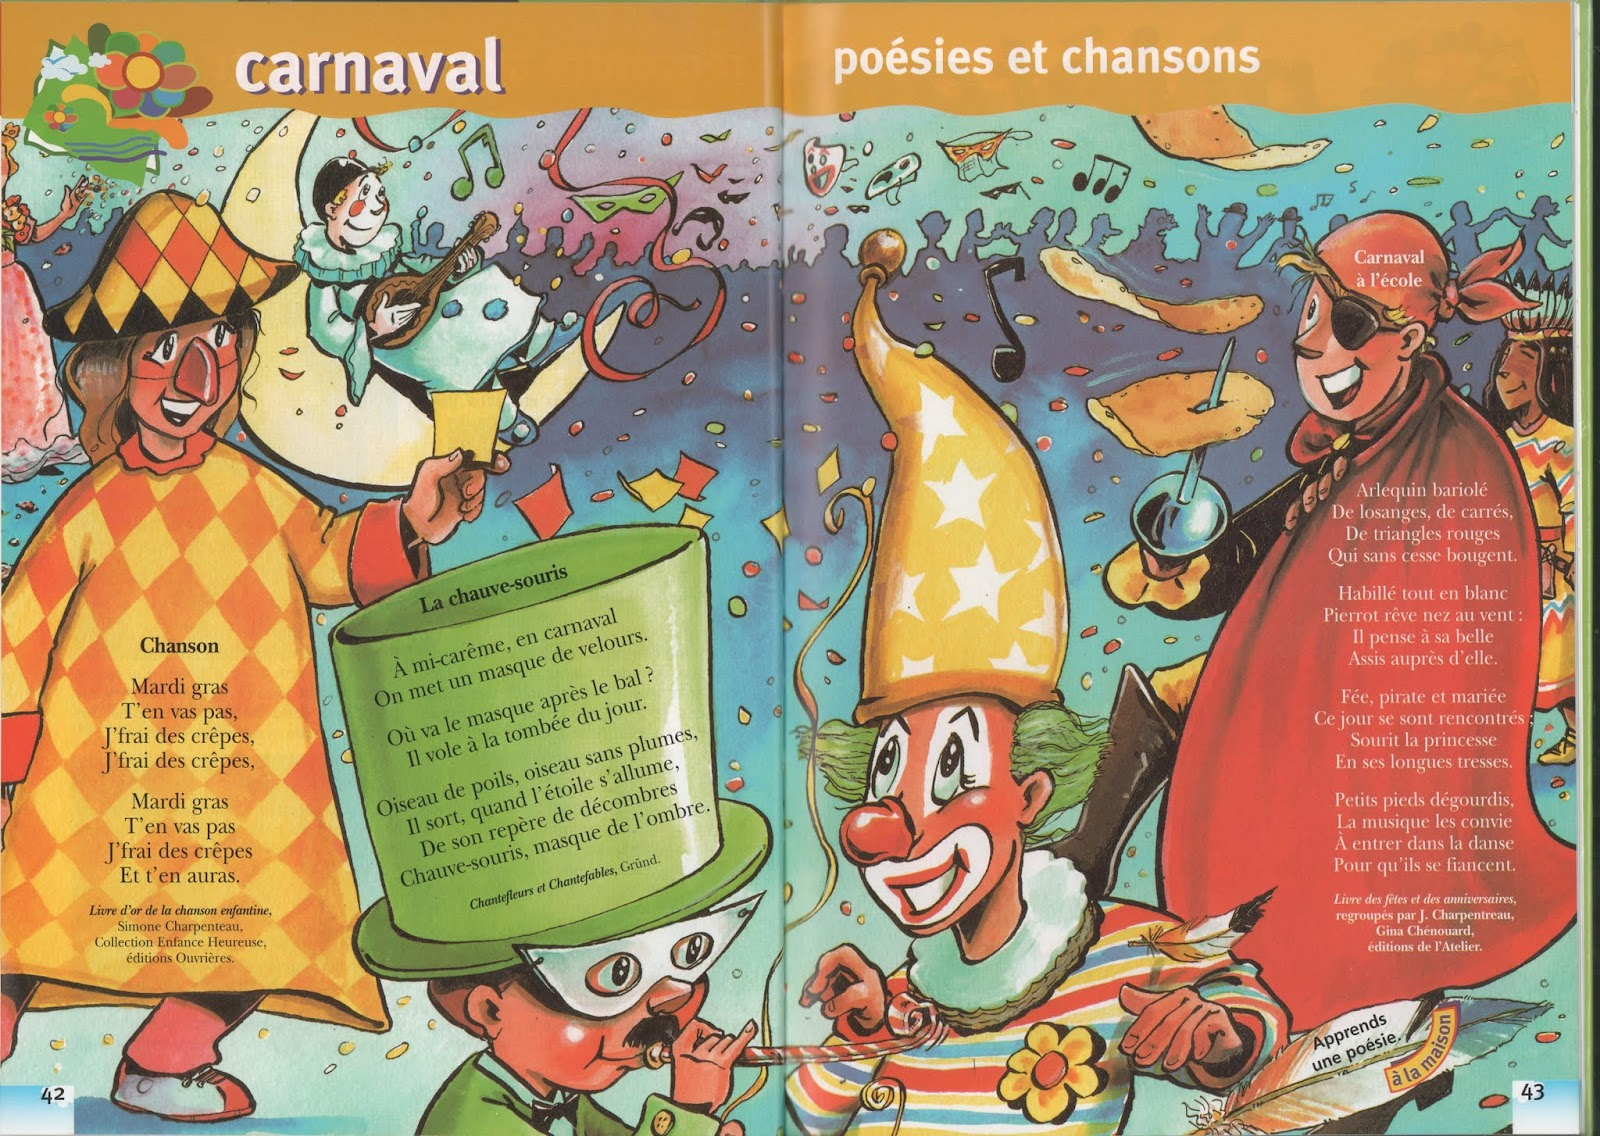 Hardcover Ages 4-8 Books for Children in French